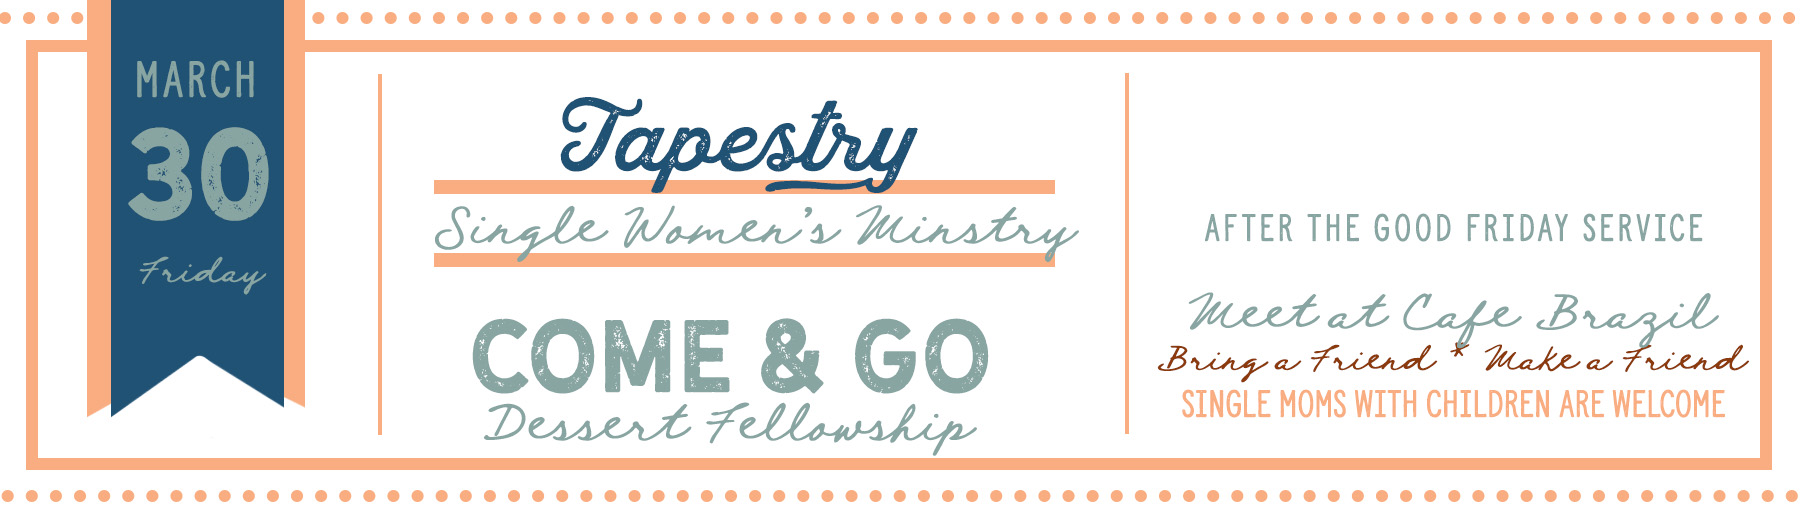 TapestryComeGo